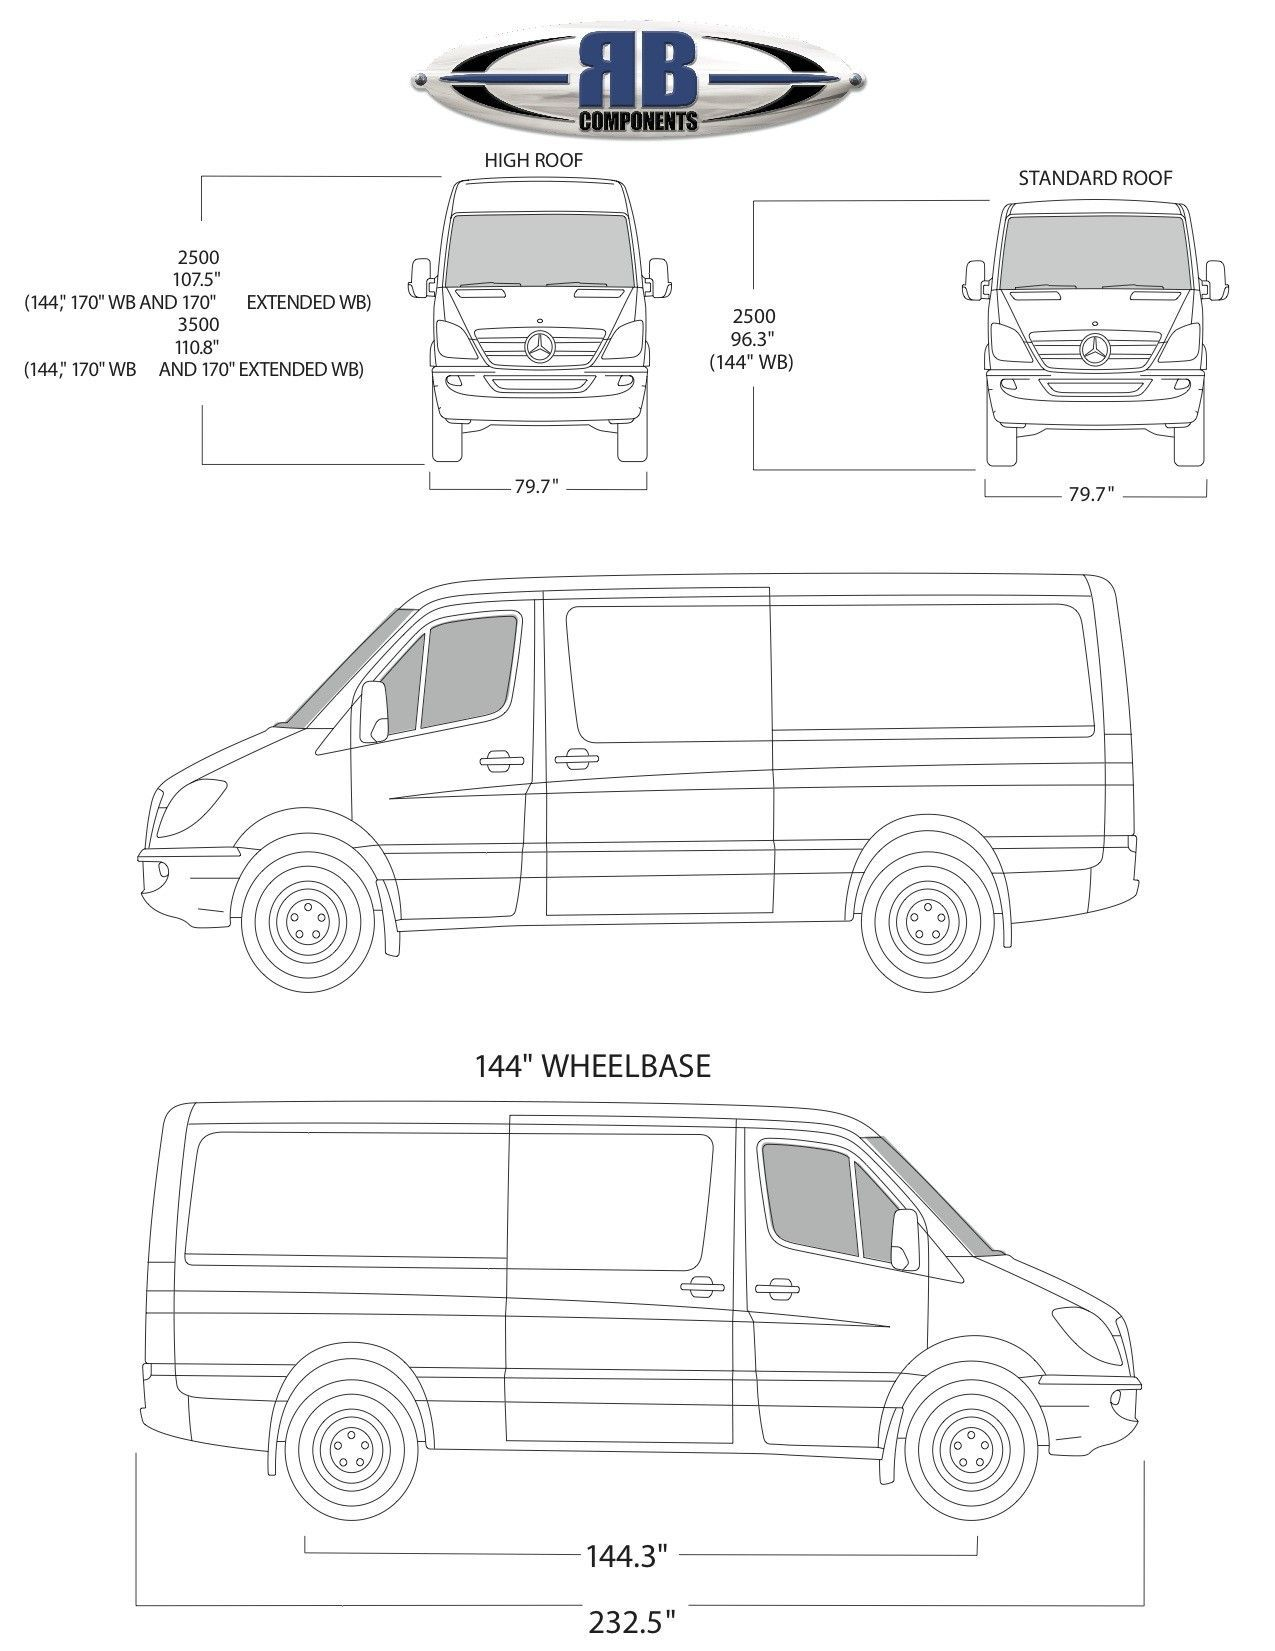 Image Result For 144 Low Roof Sprinter Van Conversion For Bike Mercedes Sprinter Camper Sprinter Camper Conversion Sprinter Van